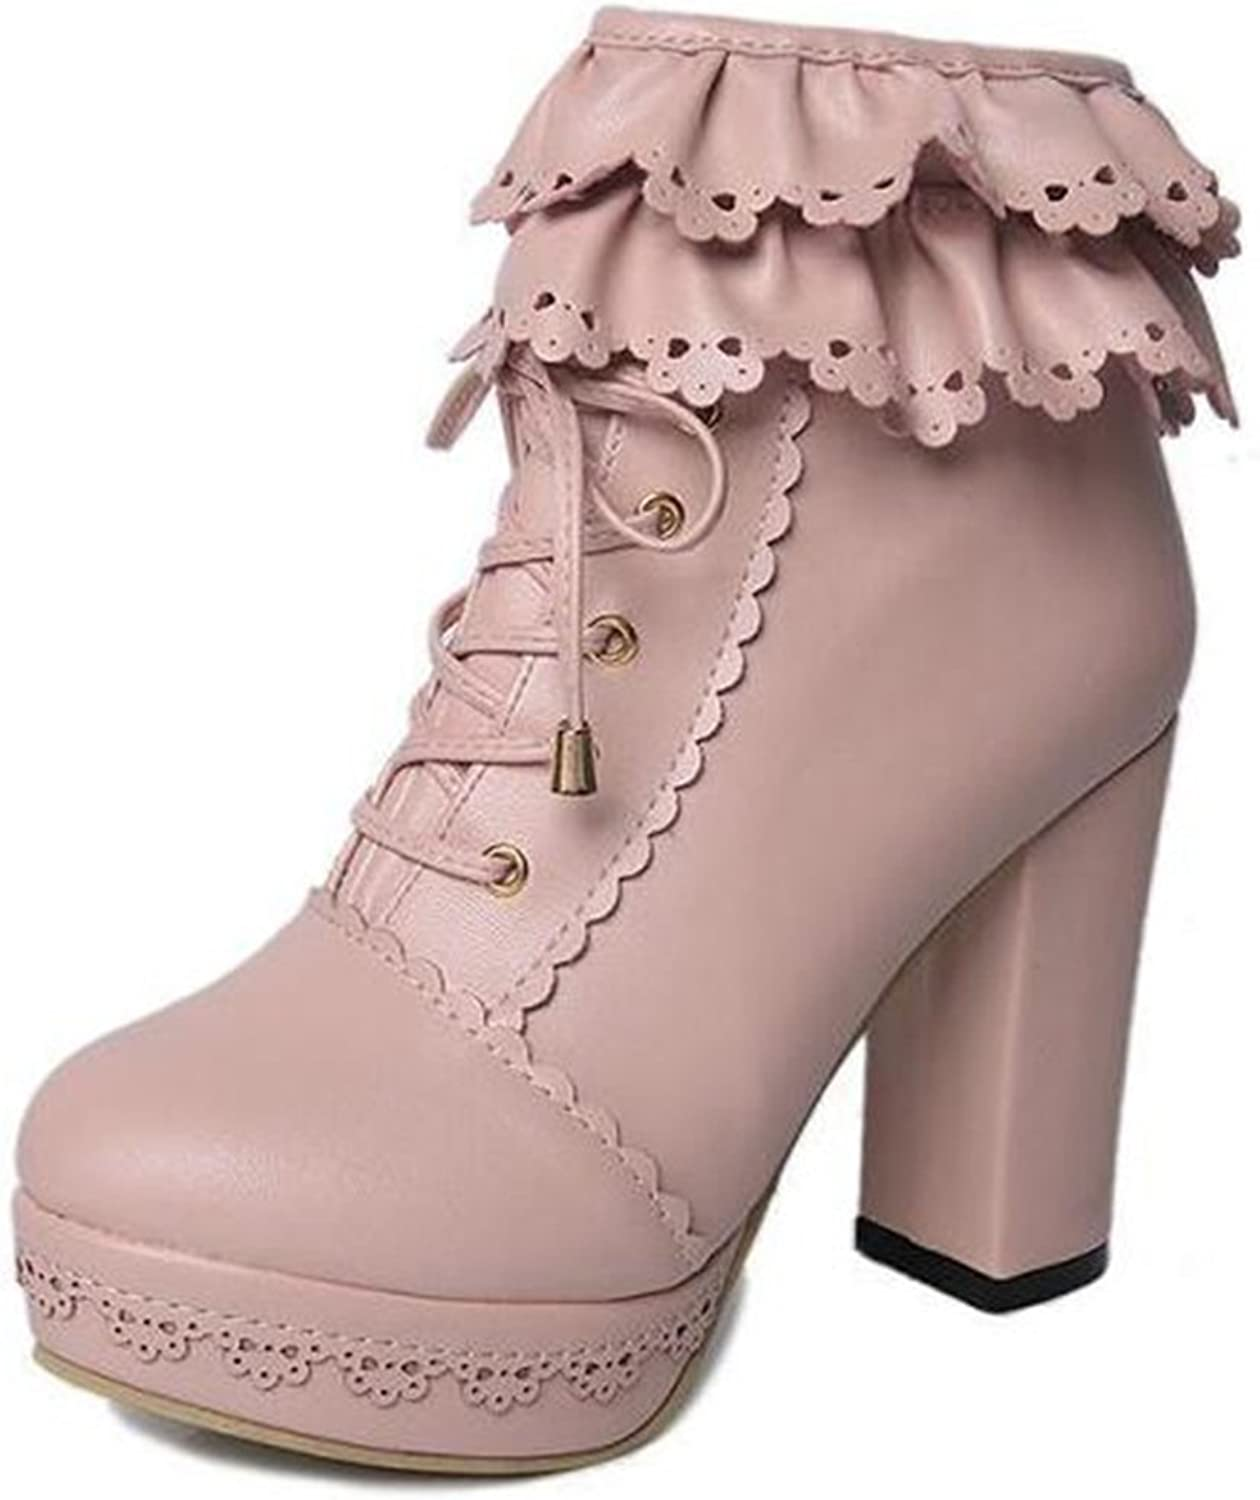 COVOYYAR Women's Lolita Platform Ankle Boots High Chunky Heel White Booties Bridal shoes